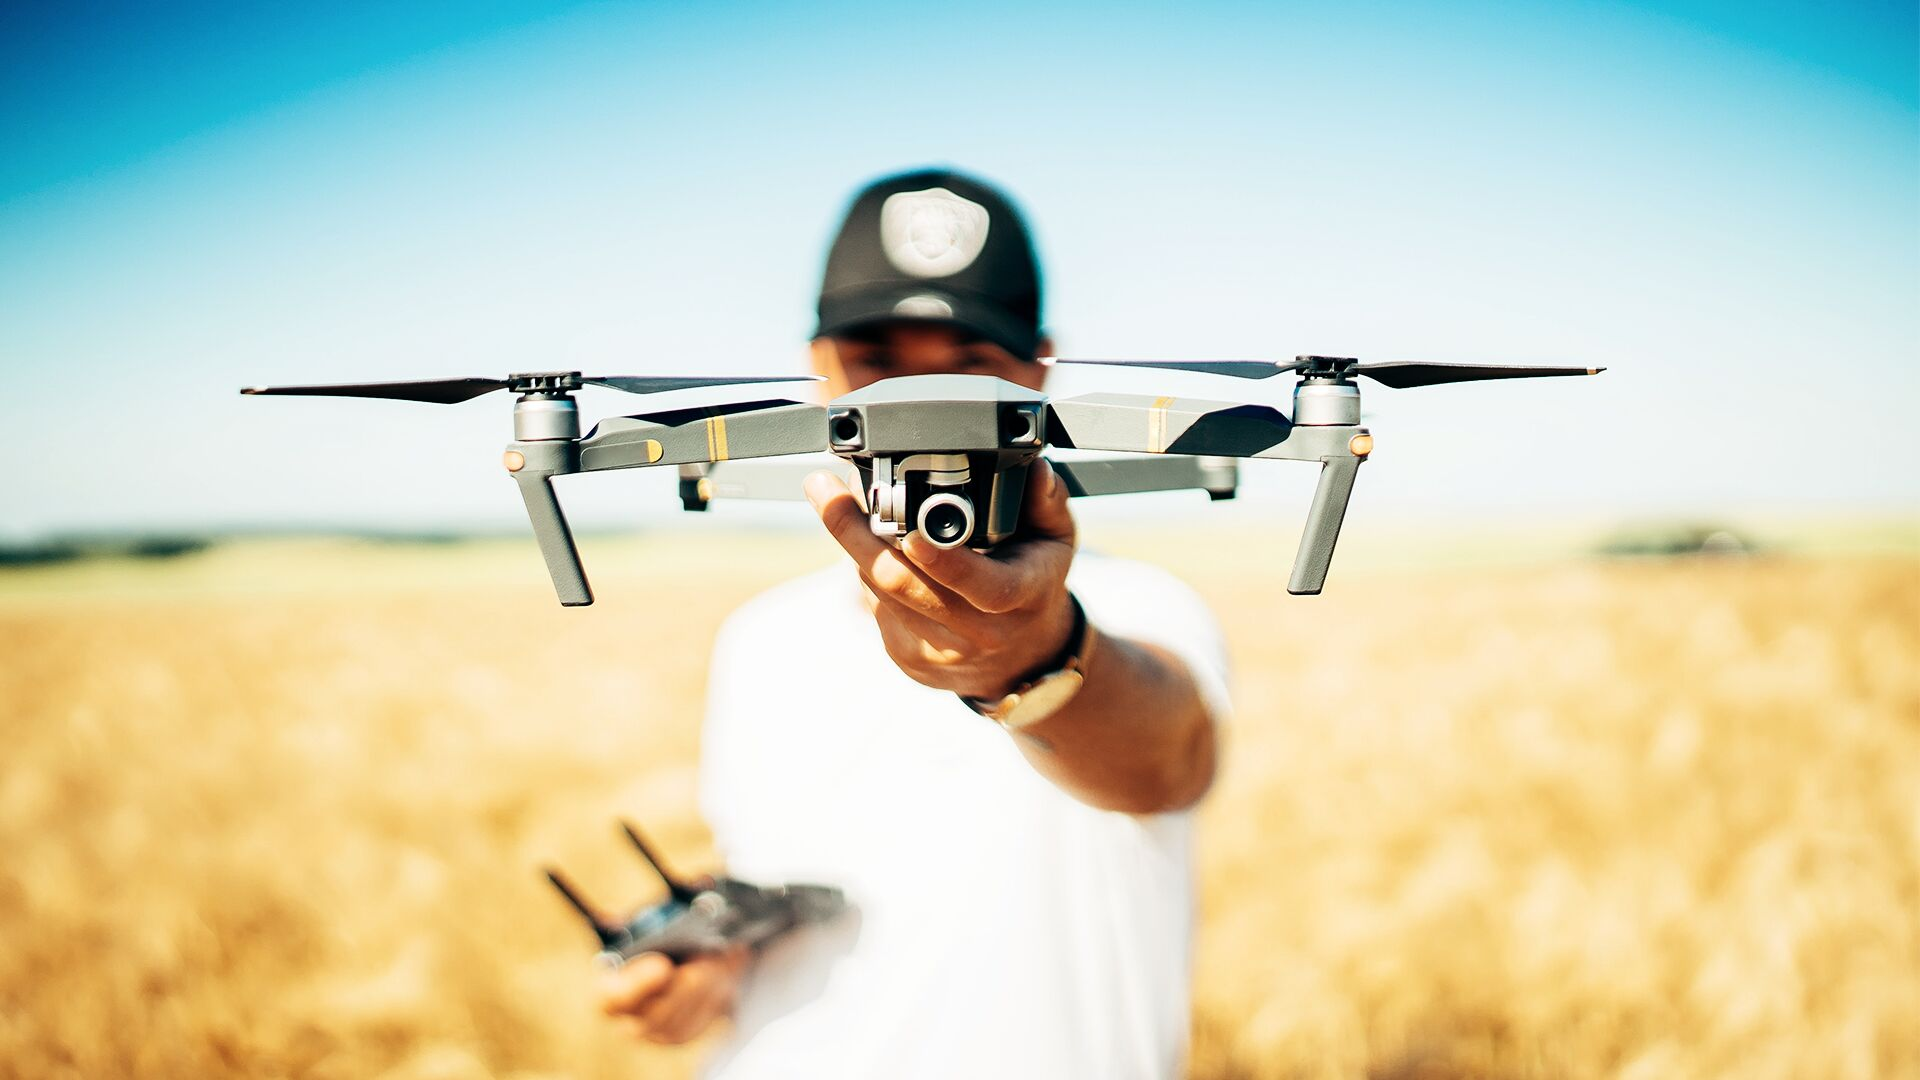 field_drone_with_camera_held_by_grower_in_field